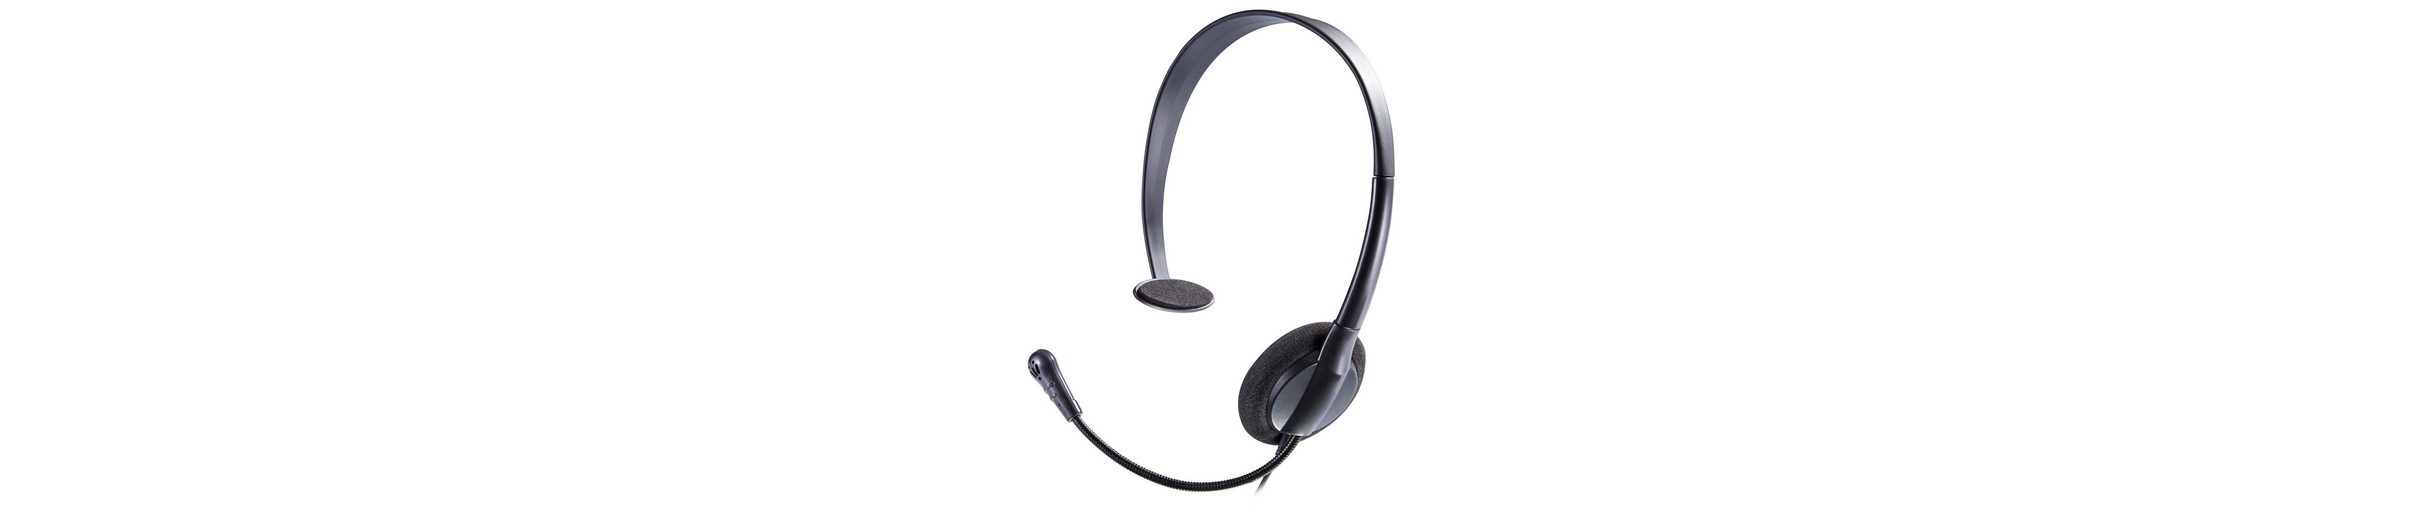 BIGBEN Headset Wired Communicator »(PS4 PC Tablet/Smartphone)«